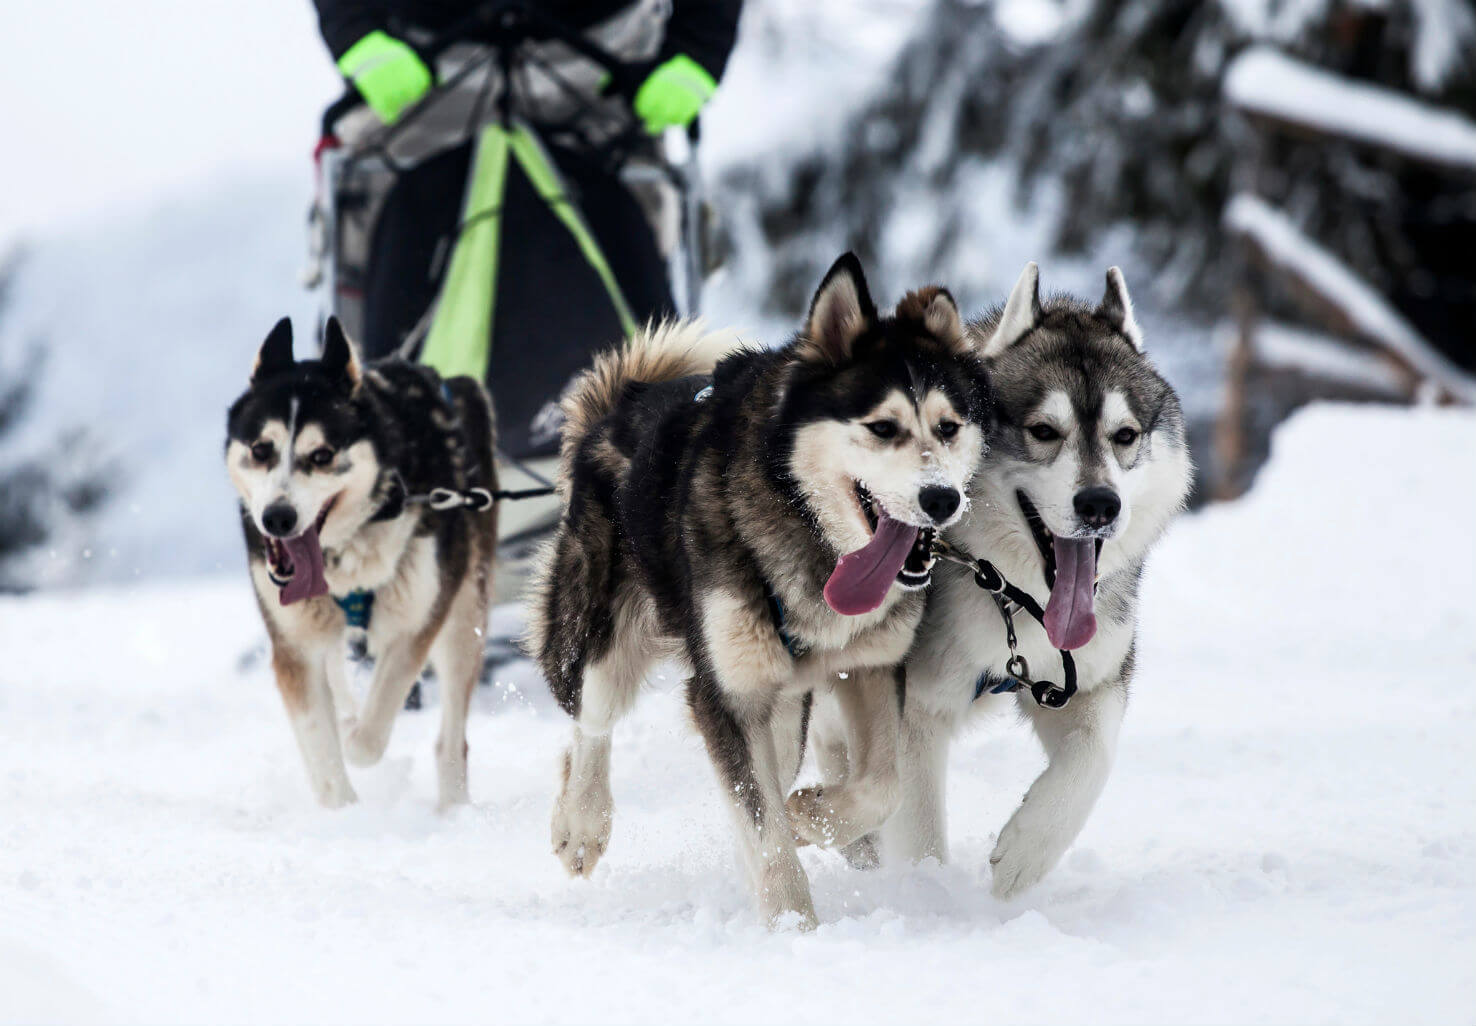 Dogs happily running while pulling a sled